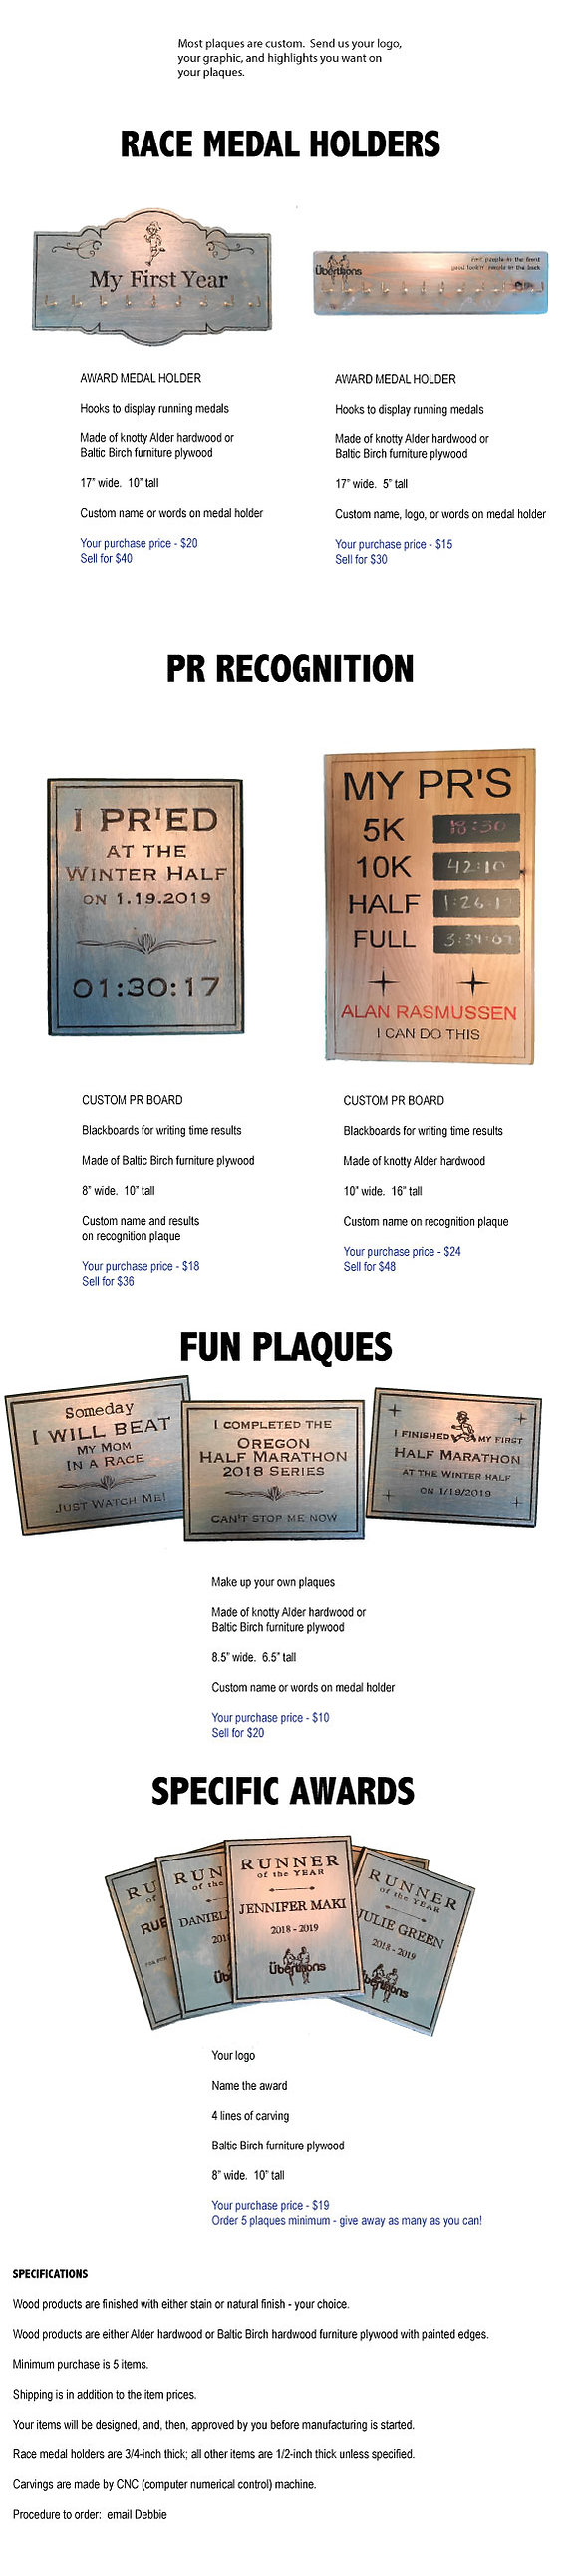 Page-of-plaques.jpg